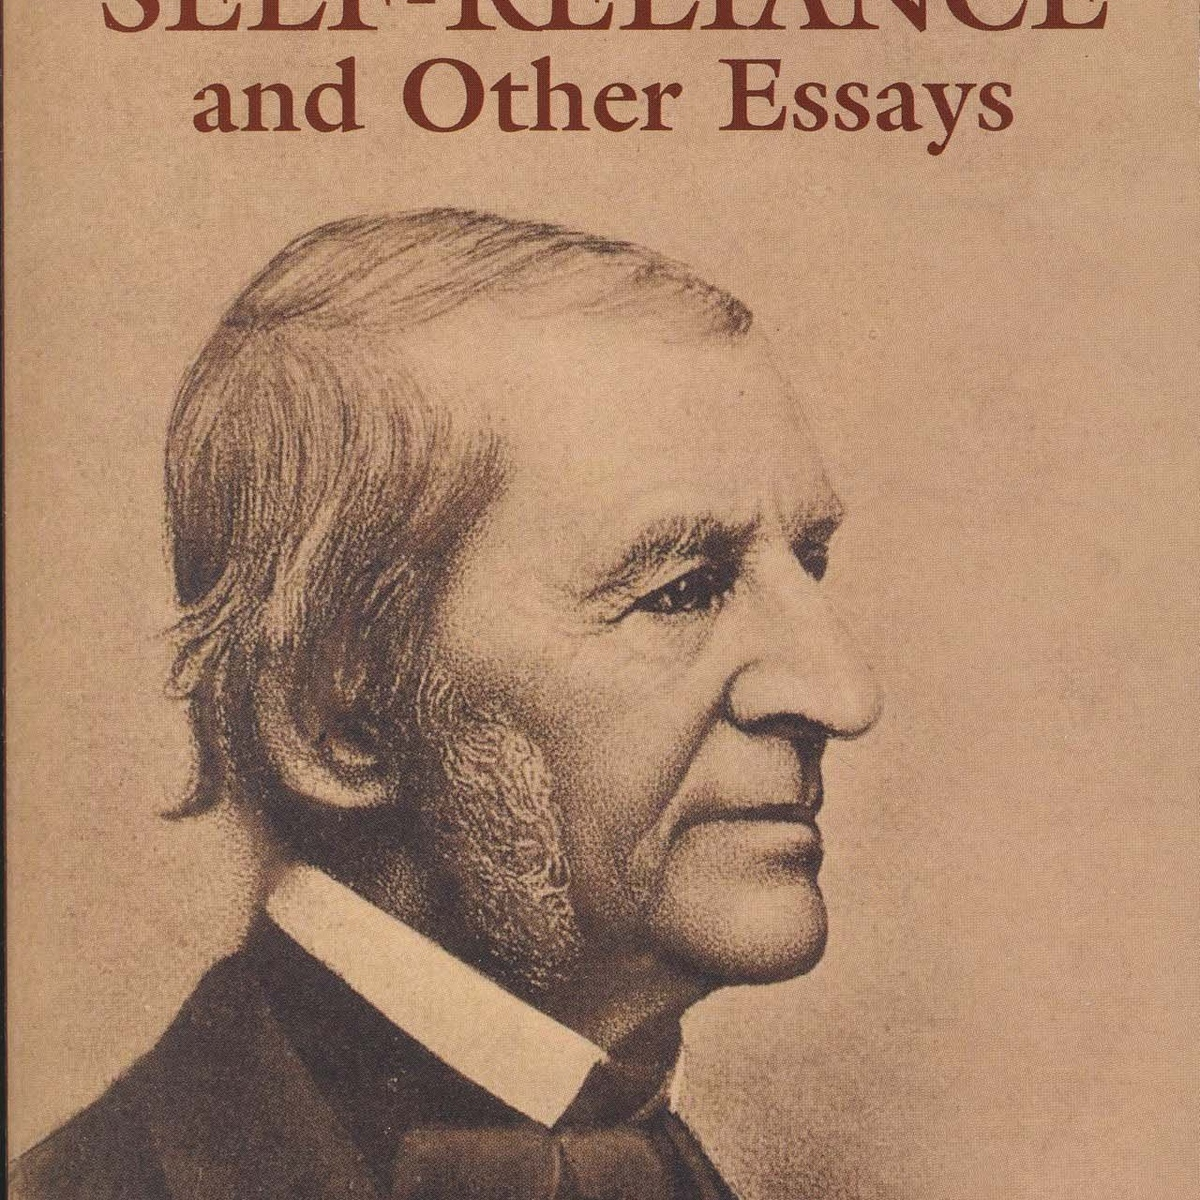 American Transcendentalism And Analysis Of Ralph Waldo Emersons  American Transcendentalism And Analysis Of Ralph Waldo Emersons  Selfreliance  Inquiries Journal